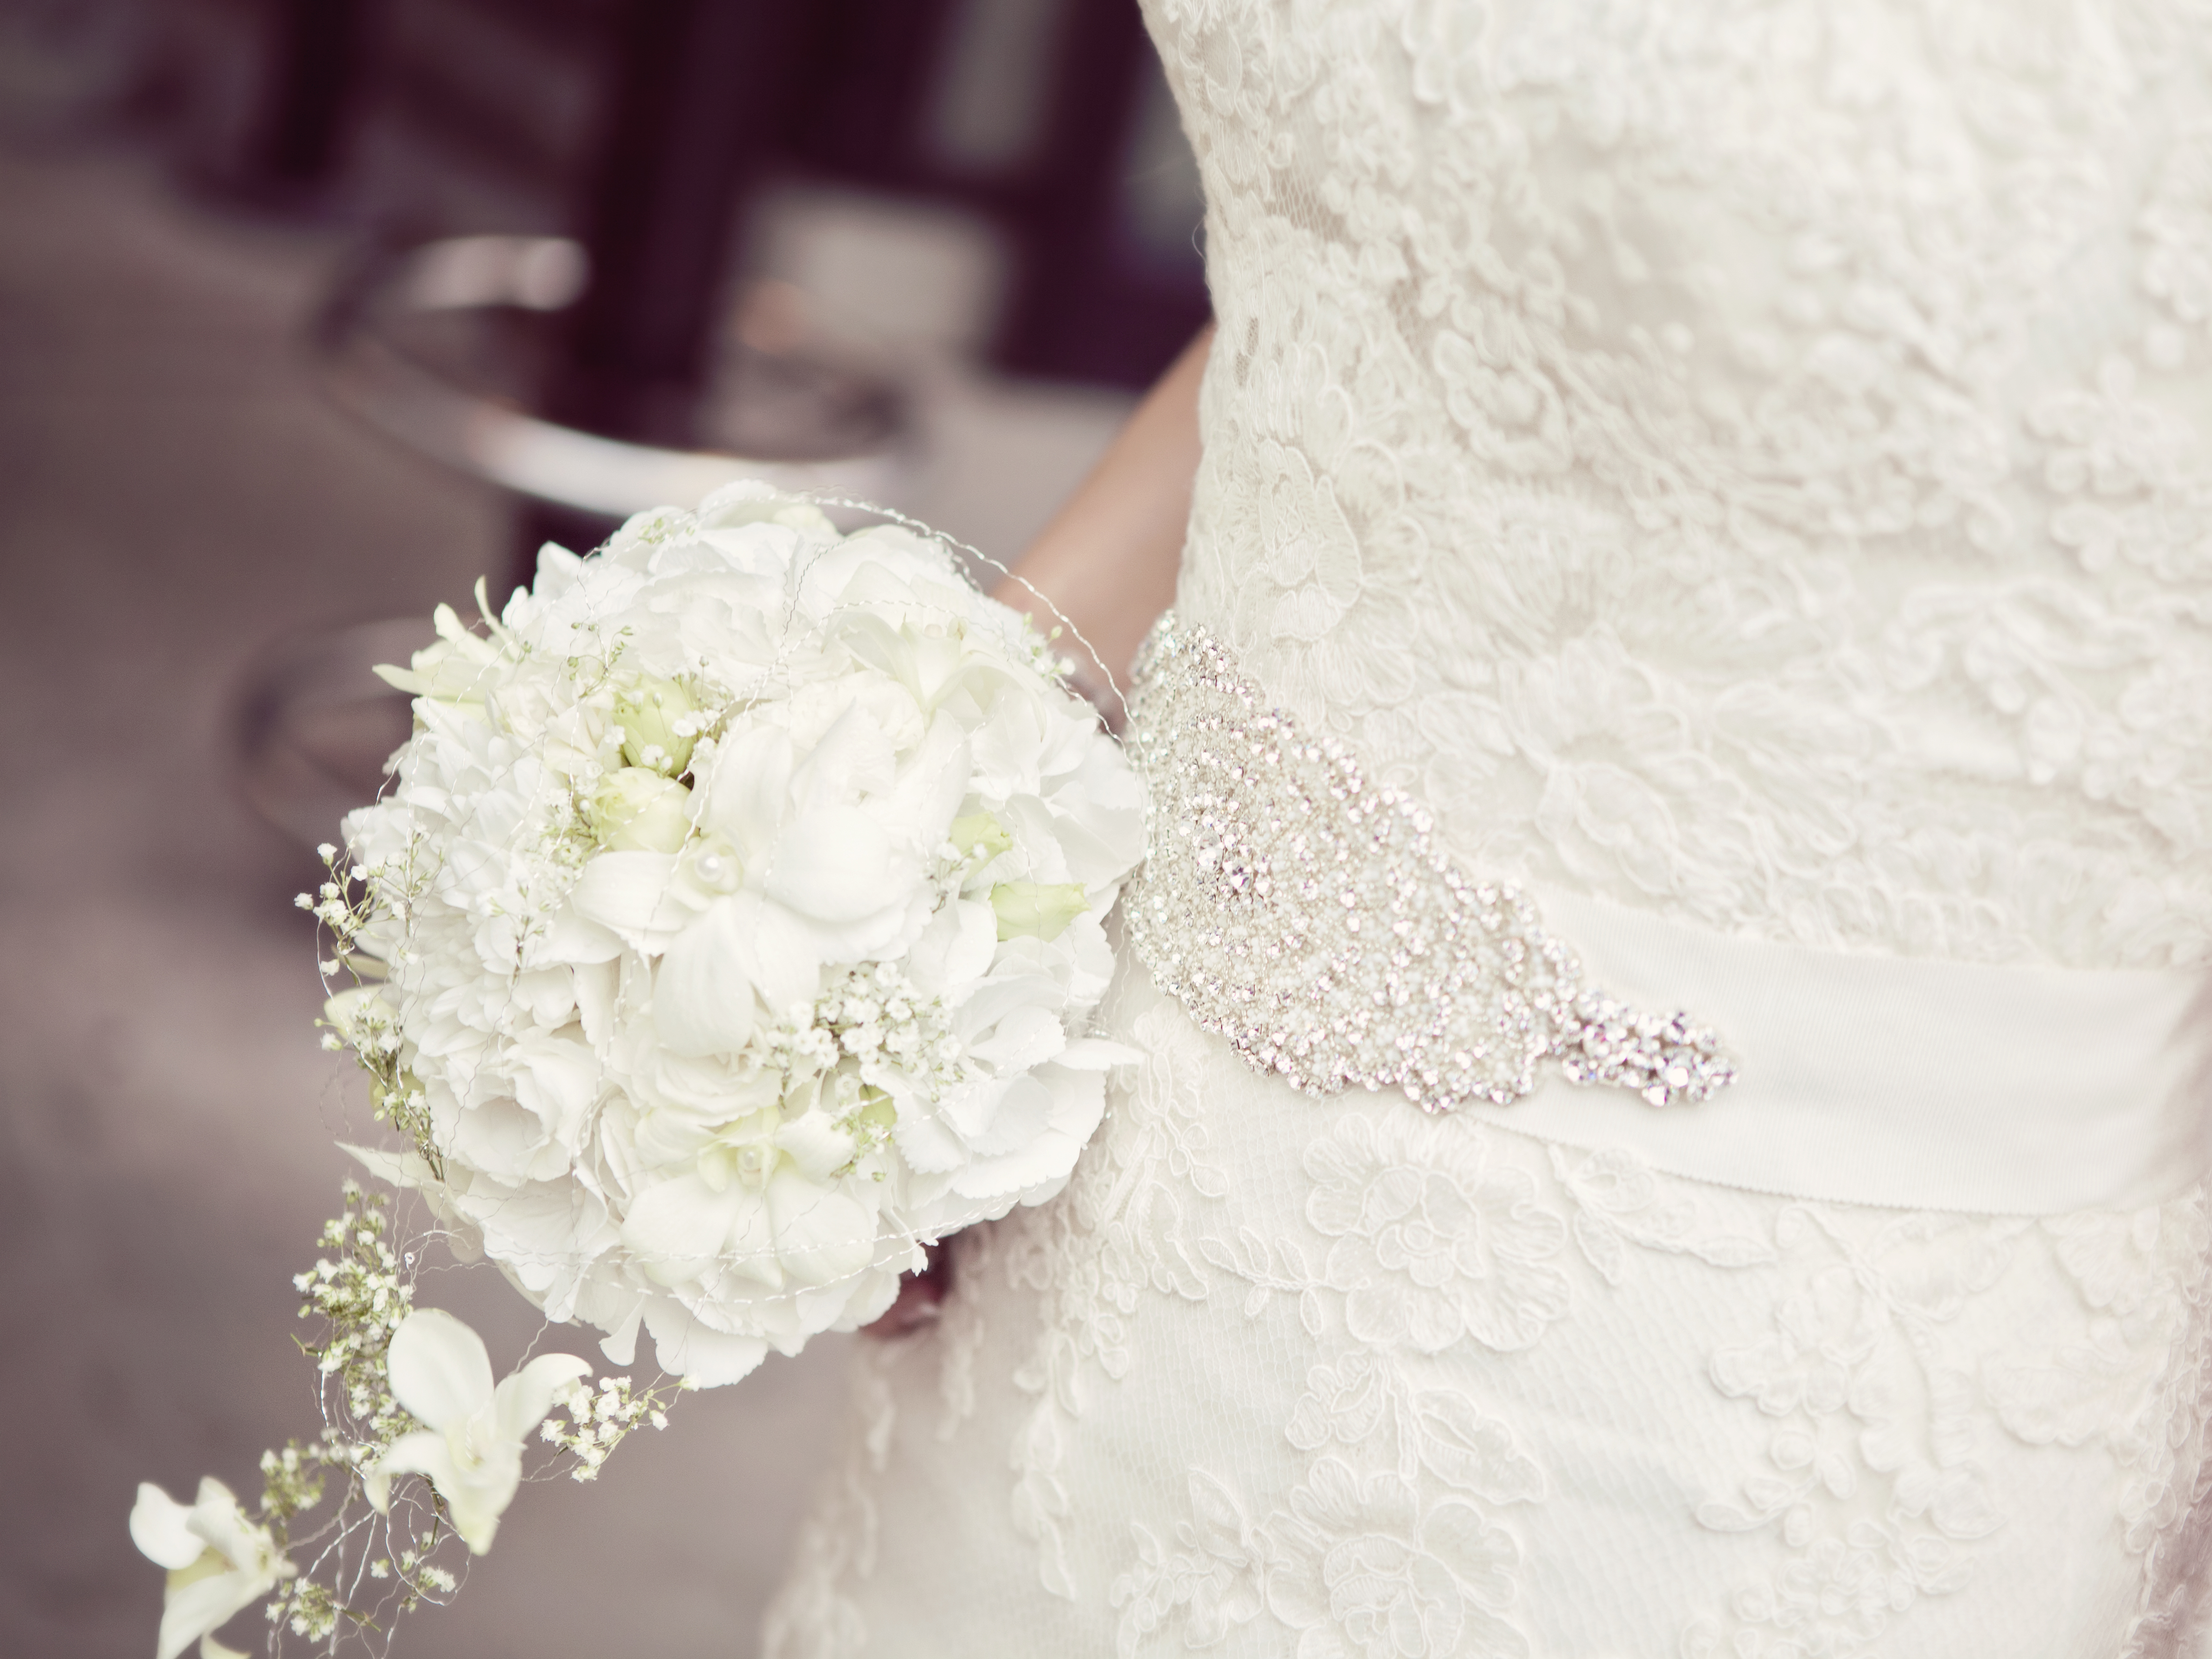 Woman Carrying Wedding Flower Free Stock Photo